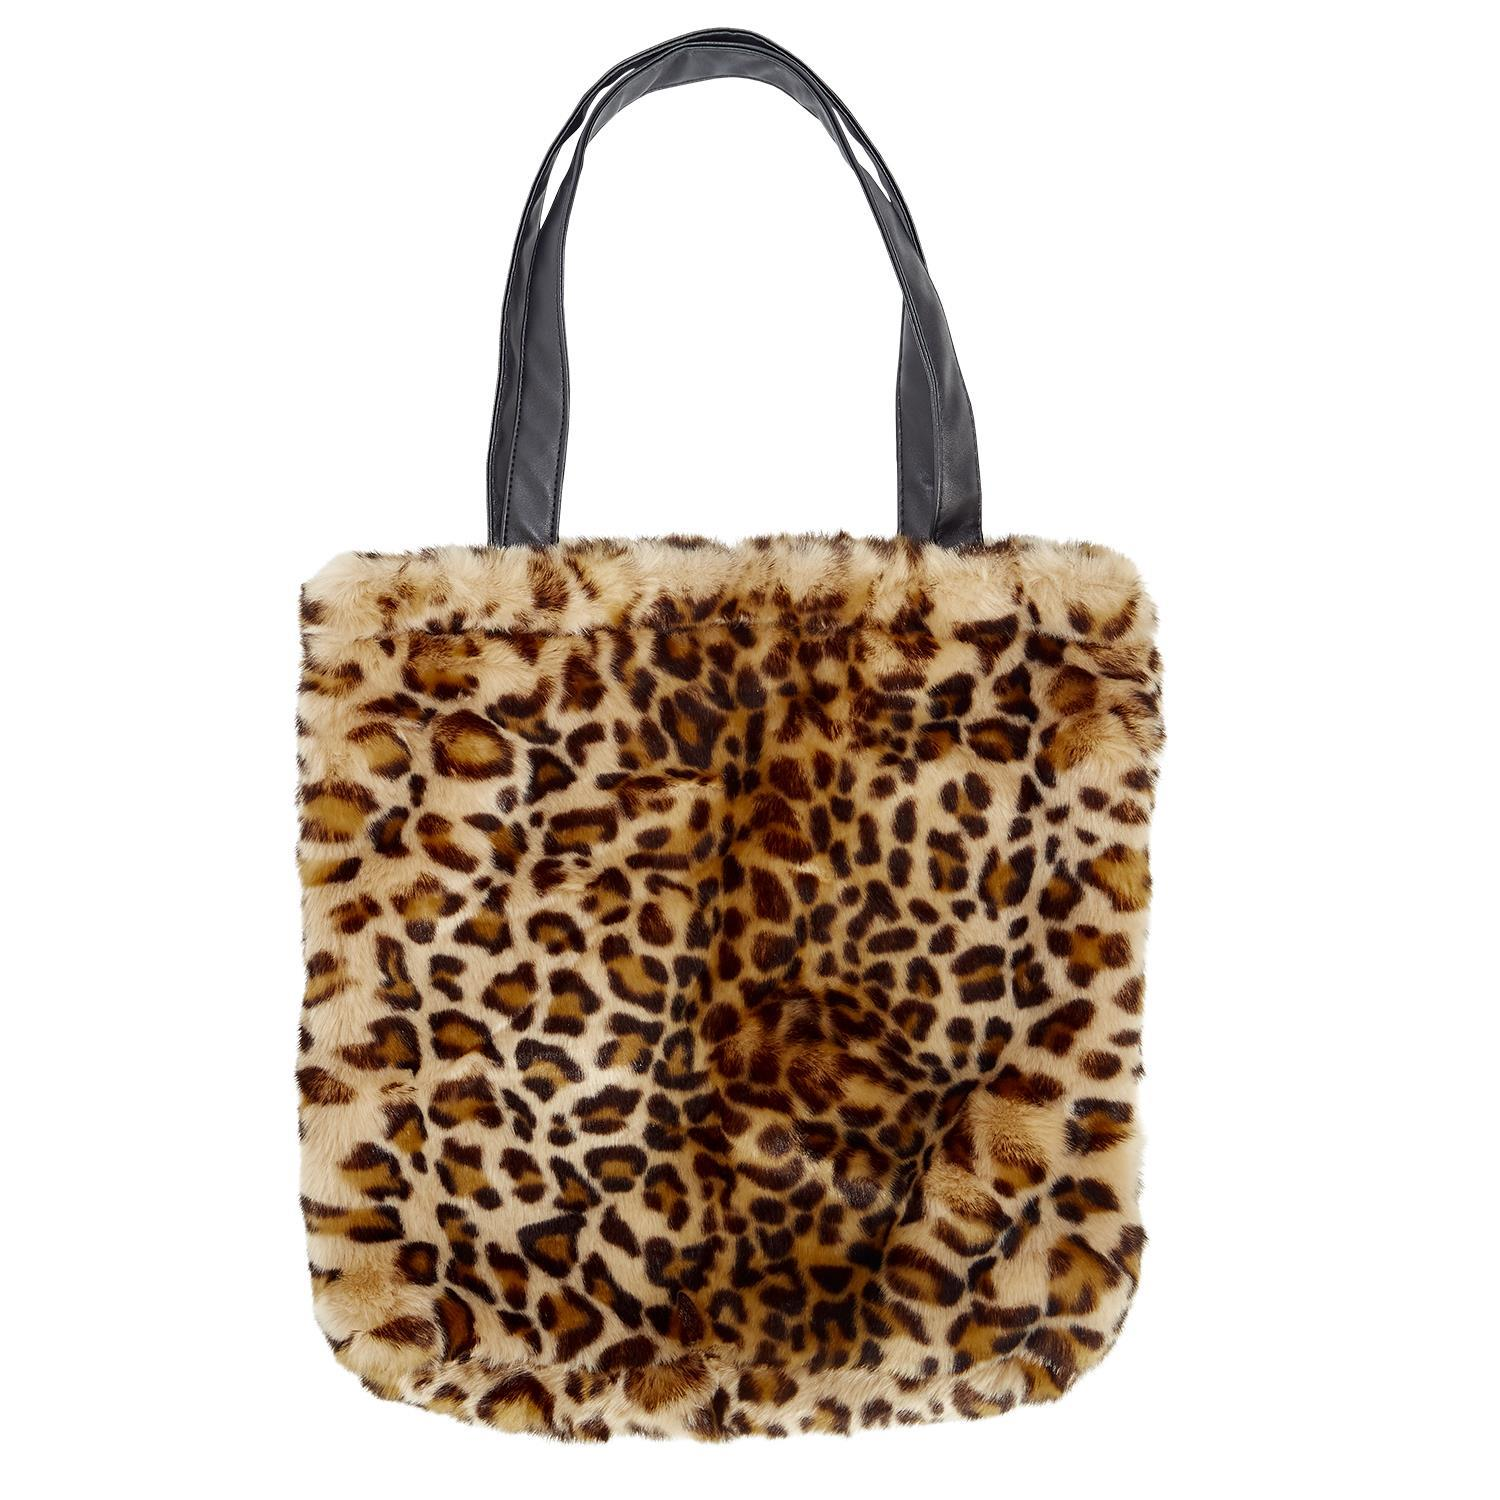 625d02e82a Leopard Pattern Faux Fur Tote with Vegan Leather Straps